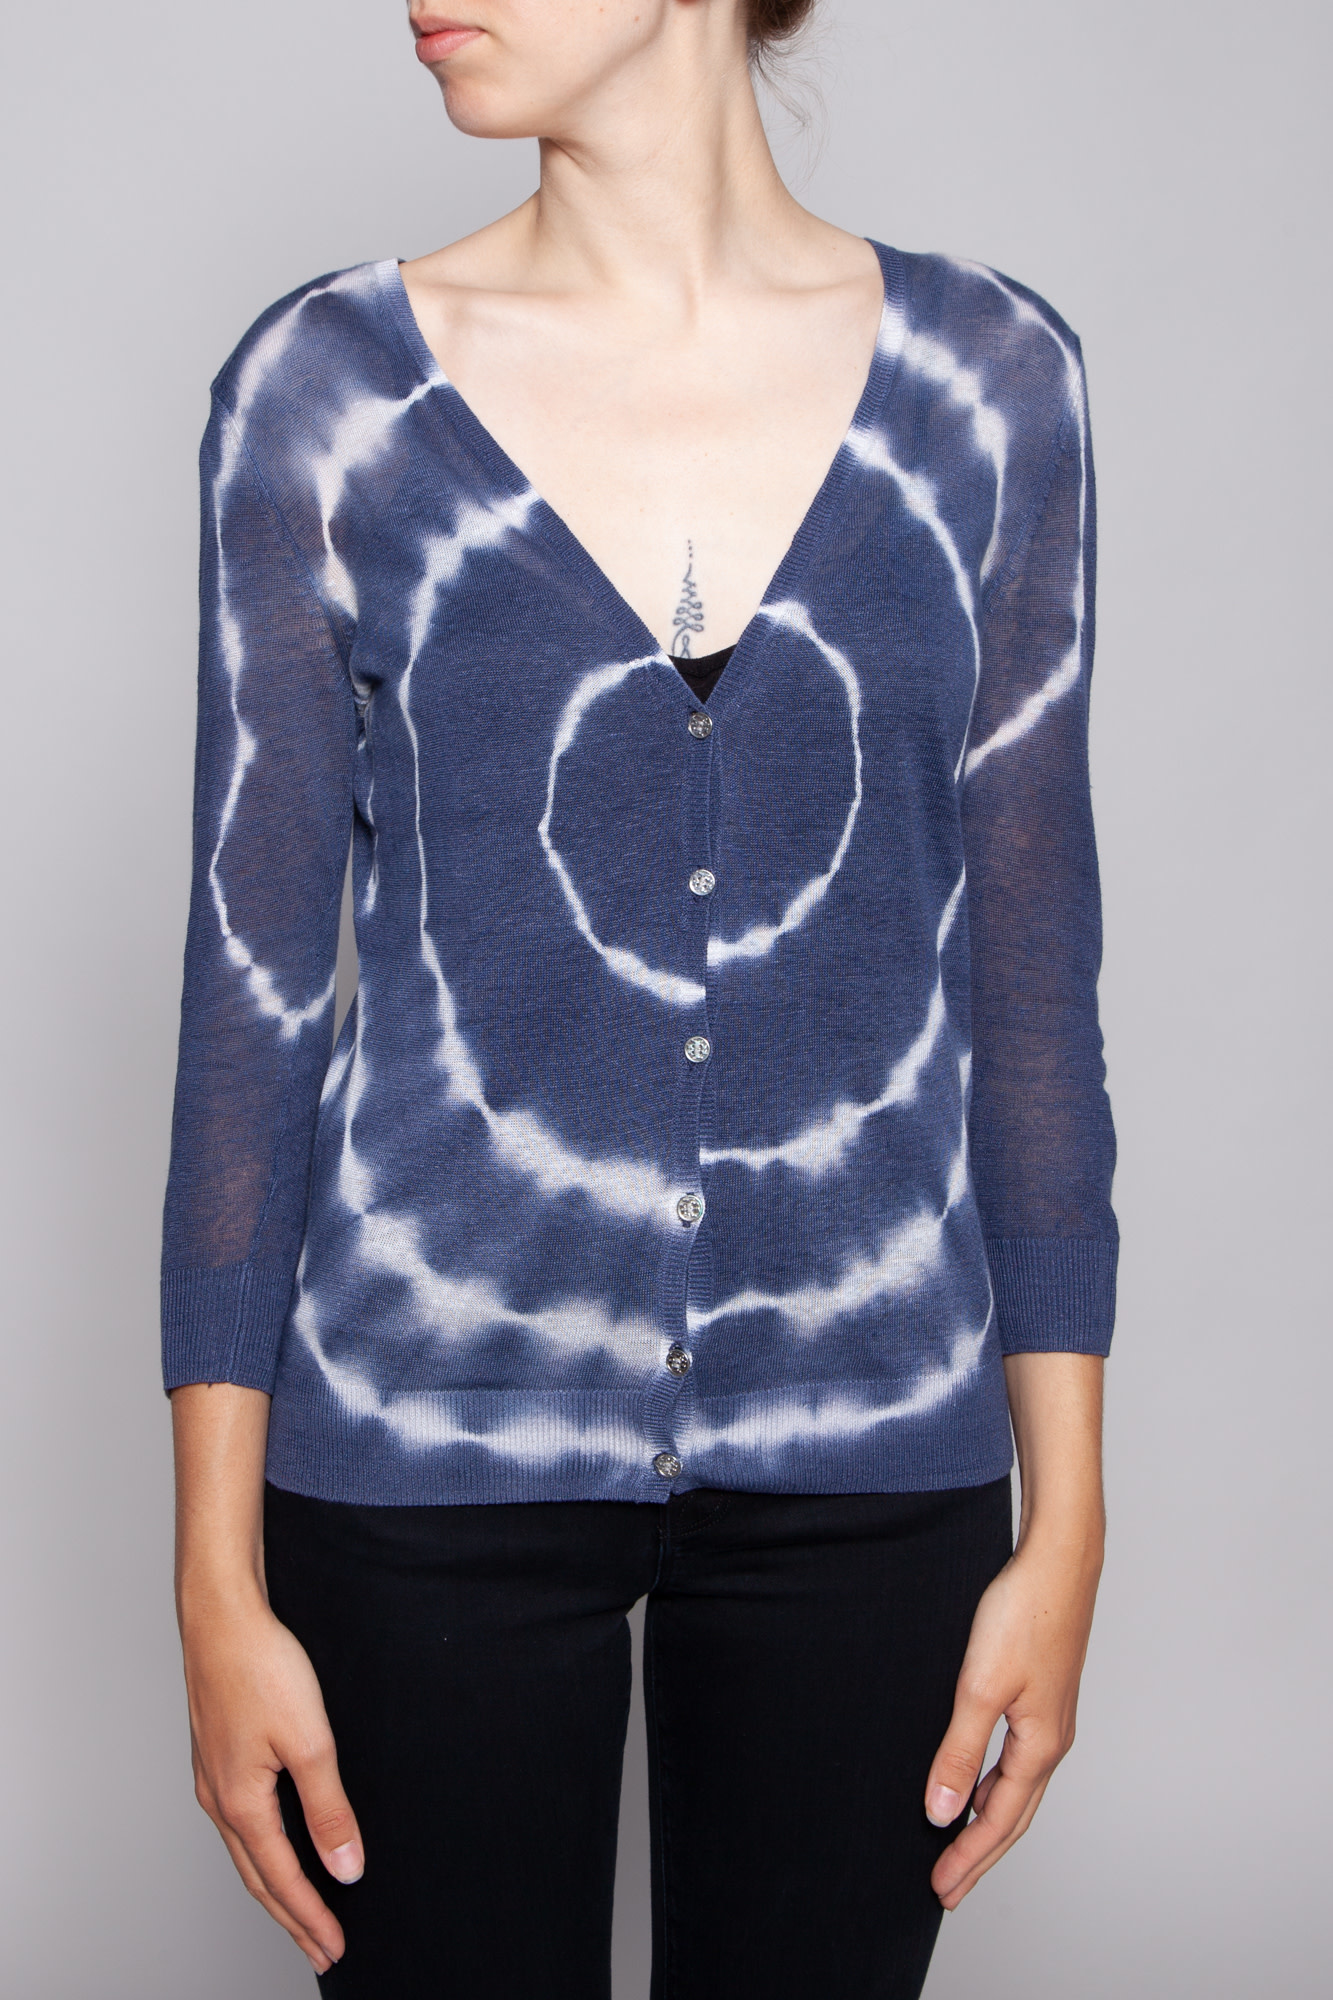 Tory Burch BLUE AND WHITE 3/4 SLEEVE CARDIGAN